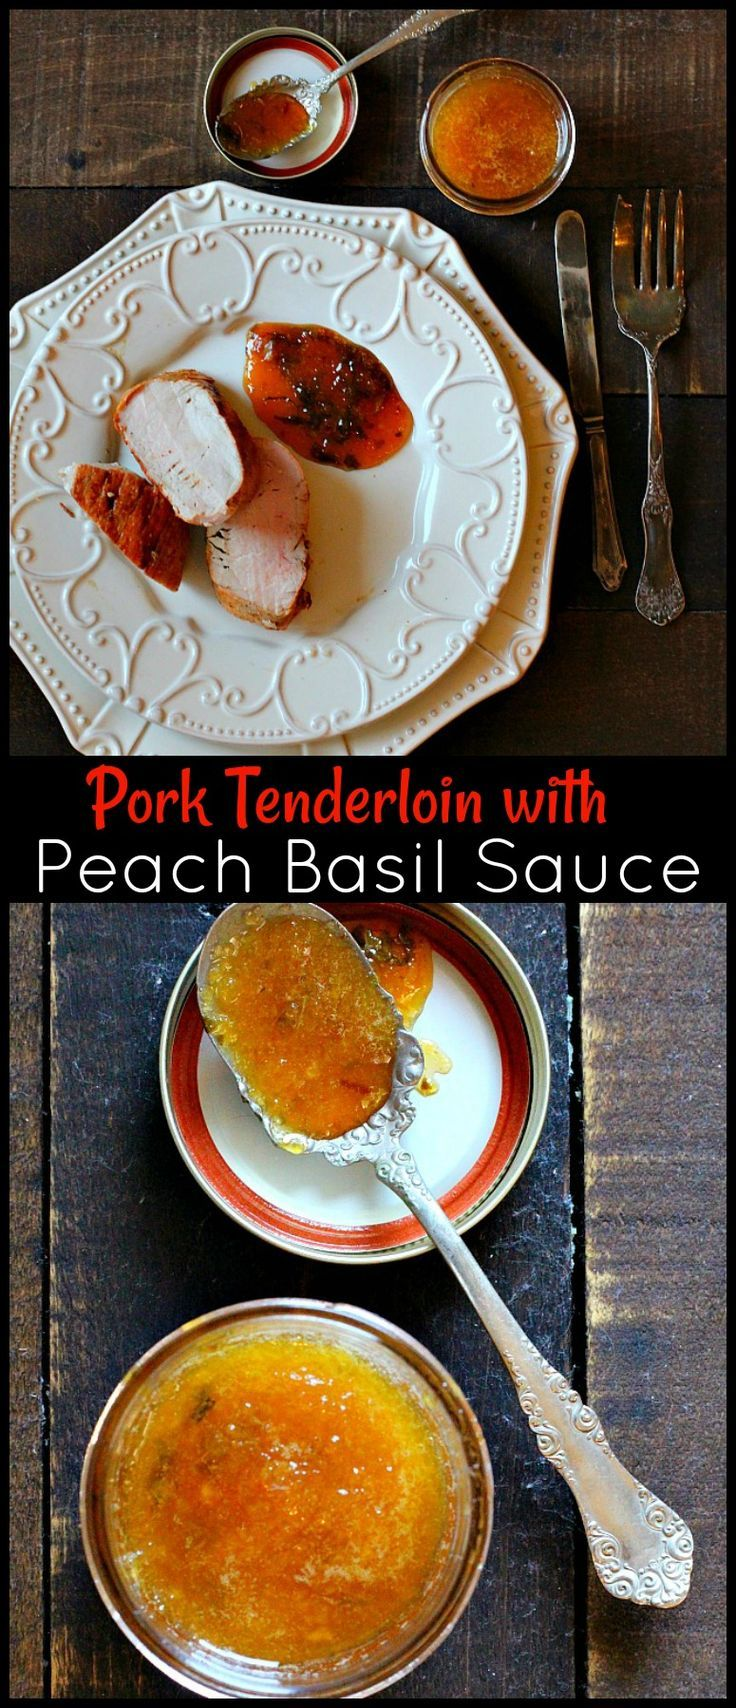 A simple Peach and Basil Gastrique Sauce for Pork or Chicken. Beautiful in flavor, this vinegar and peach puree sauce turns into a delicious glaze. Lean how to make a gastrique, the flavor combos are endless. via @lannisam